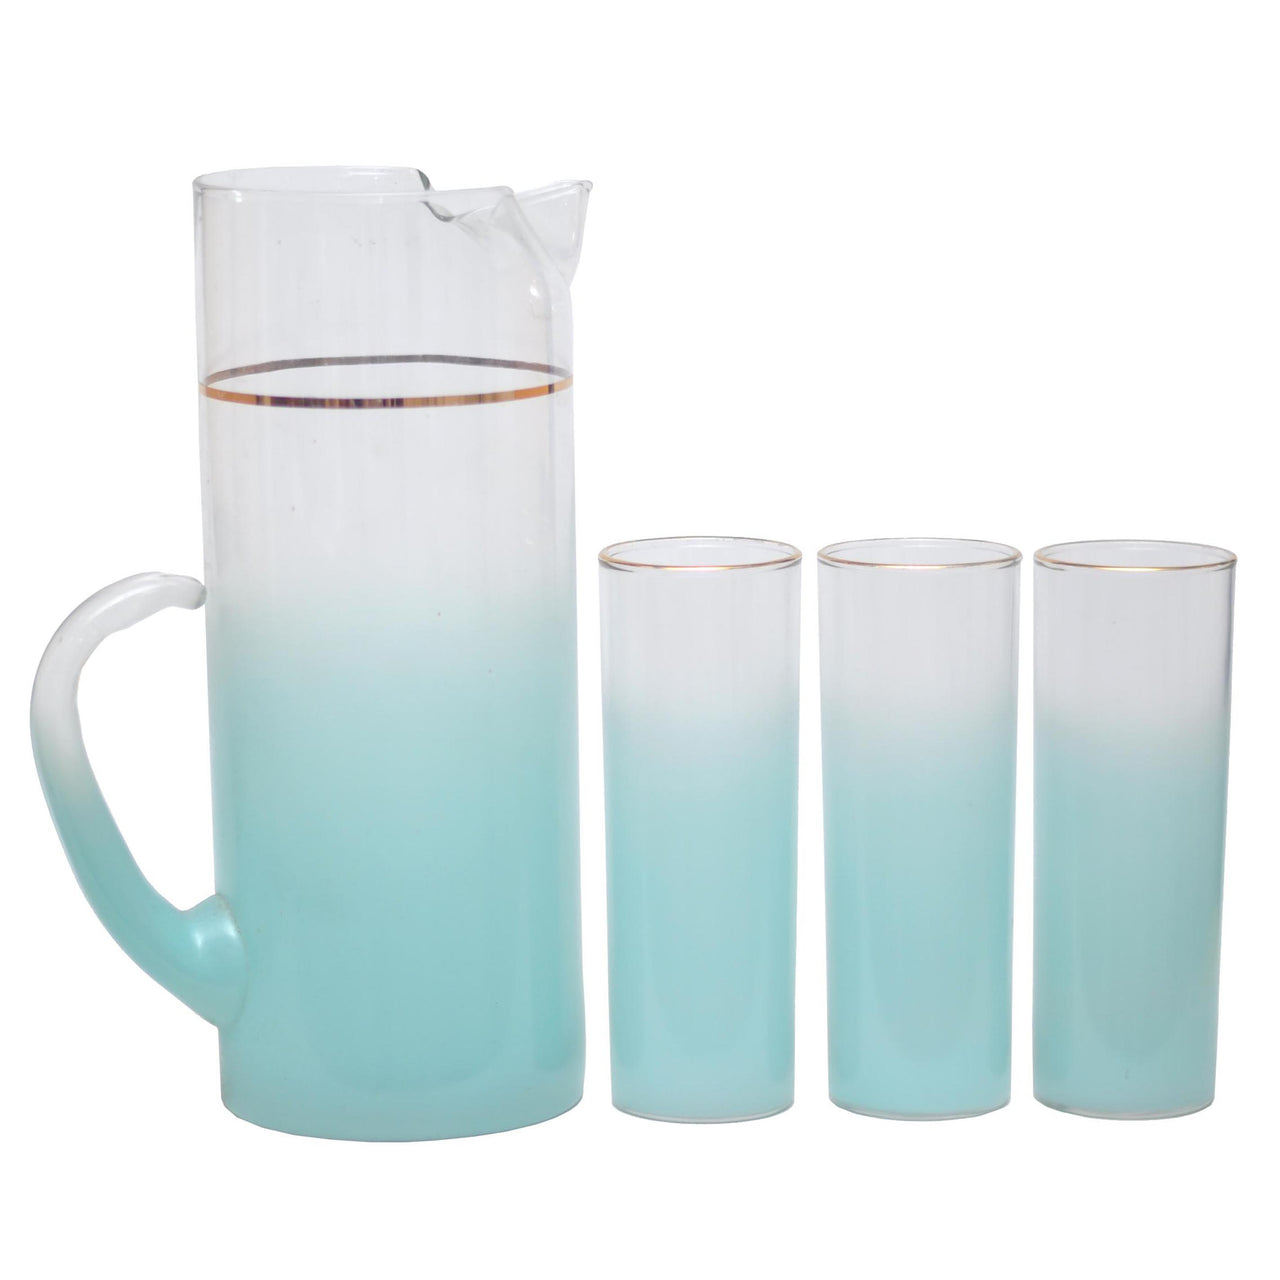 Vintage West Virginia Glass Light Blue Pitcher Set | The Hour